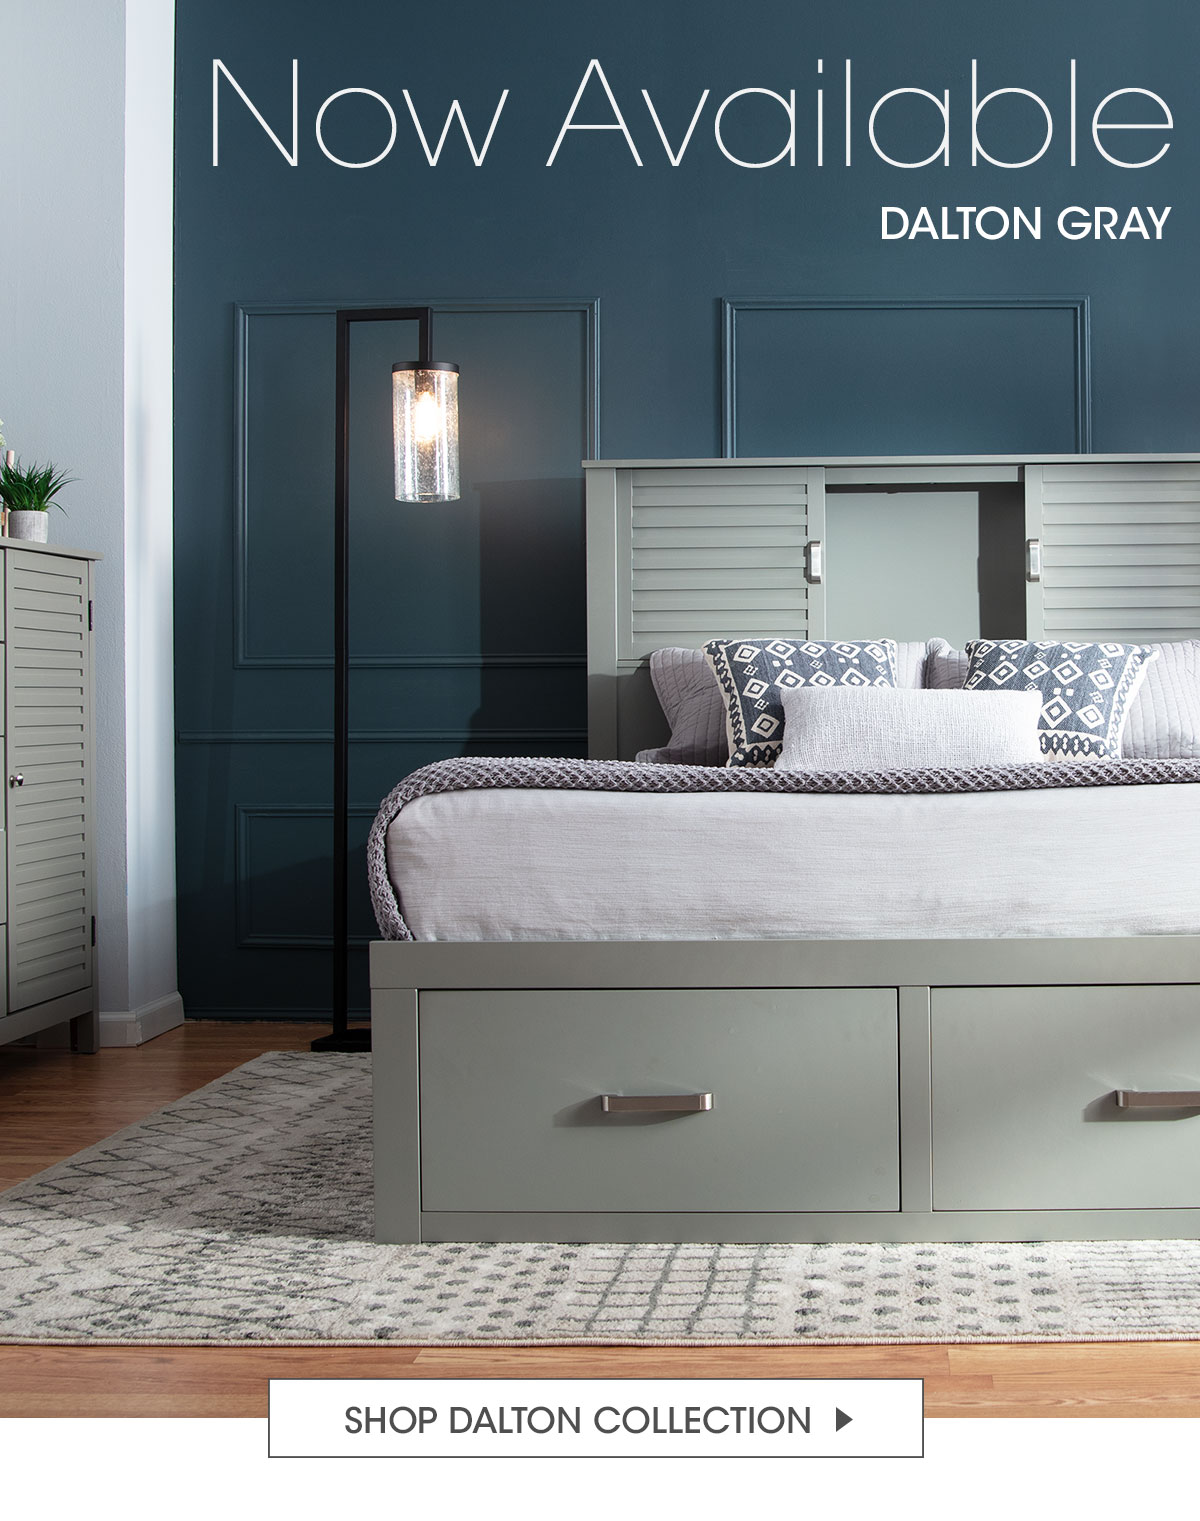 Dalton Bedroom Set : dalton, bedroom, Discount, Furniture:, Dalton, Bedroom, Available, Gray!, Milled